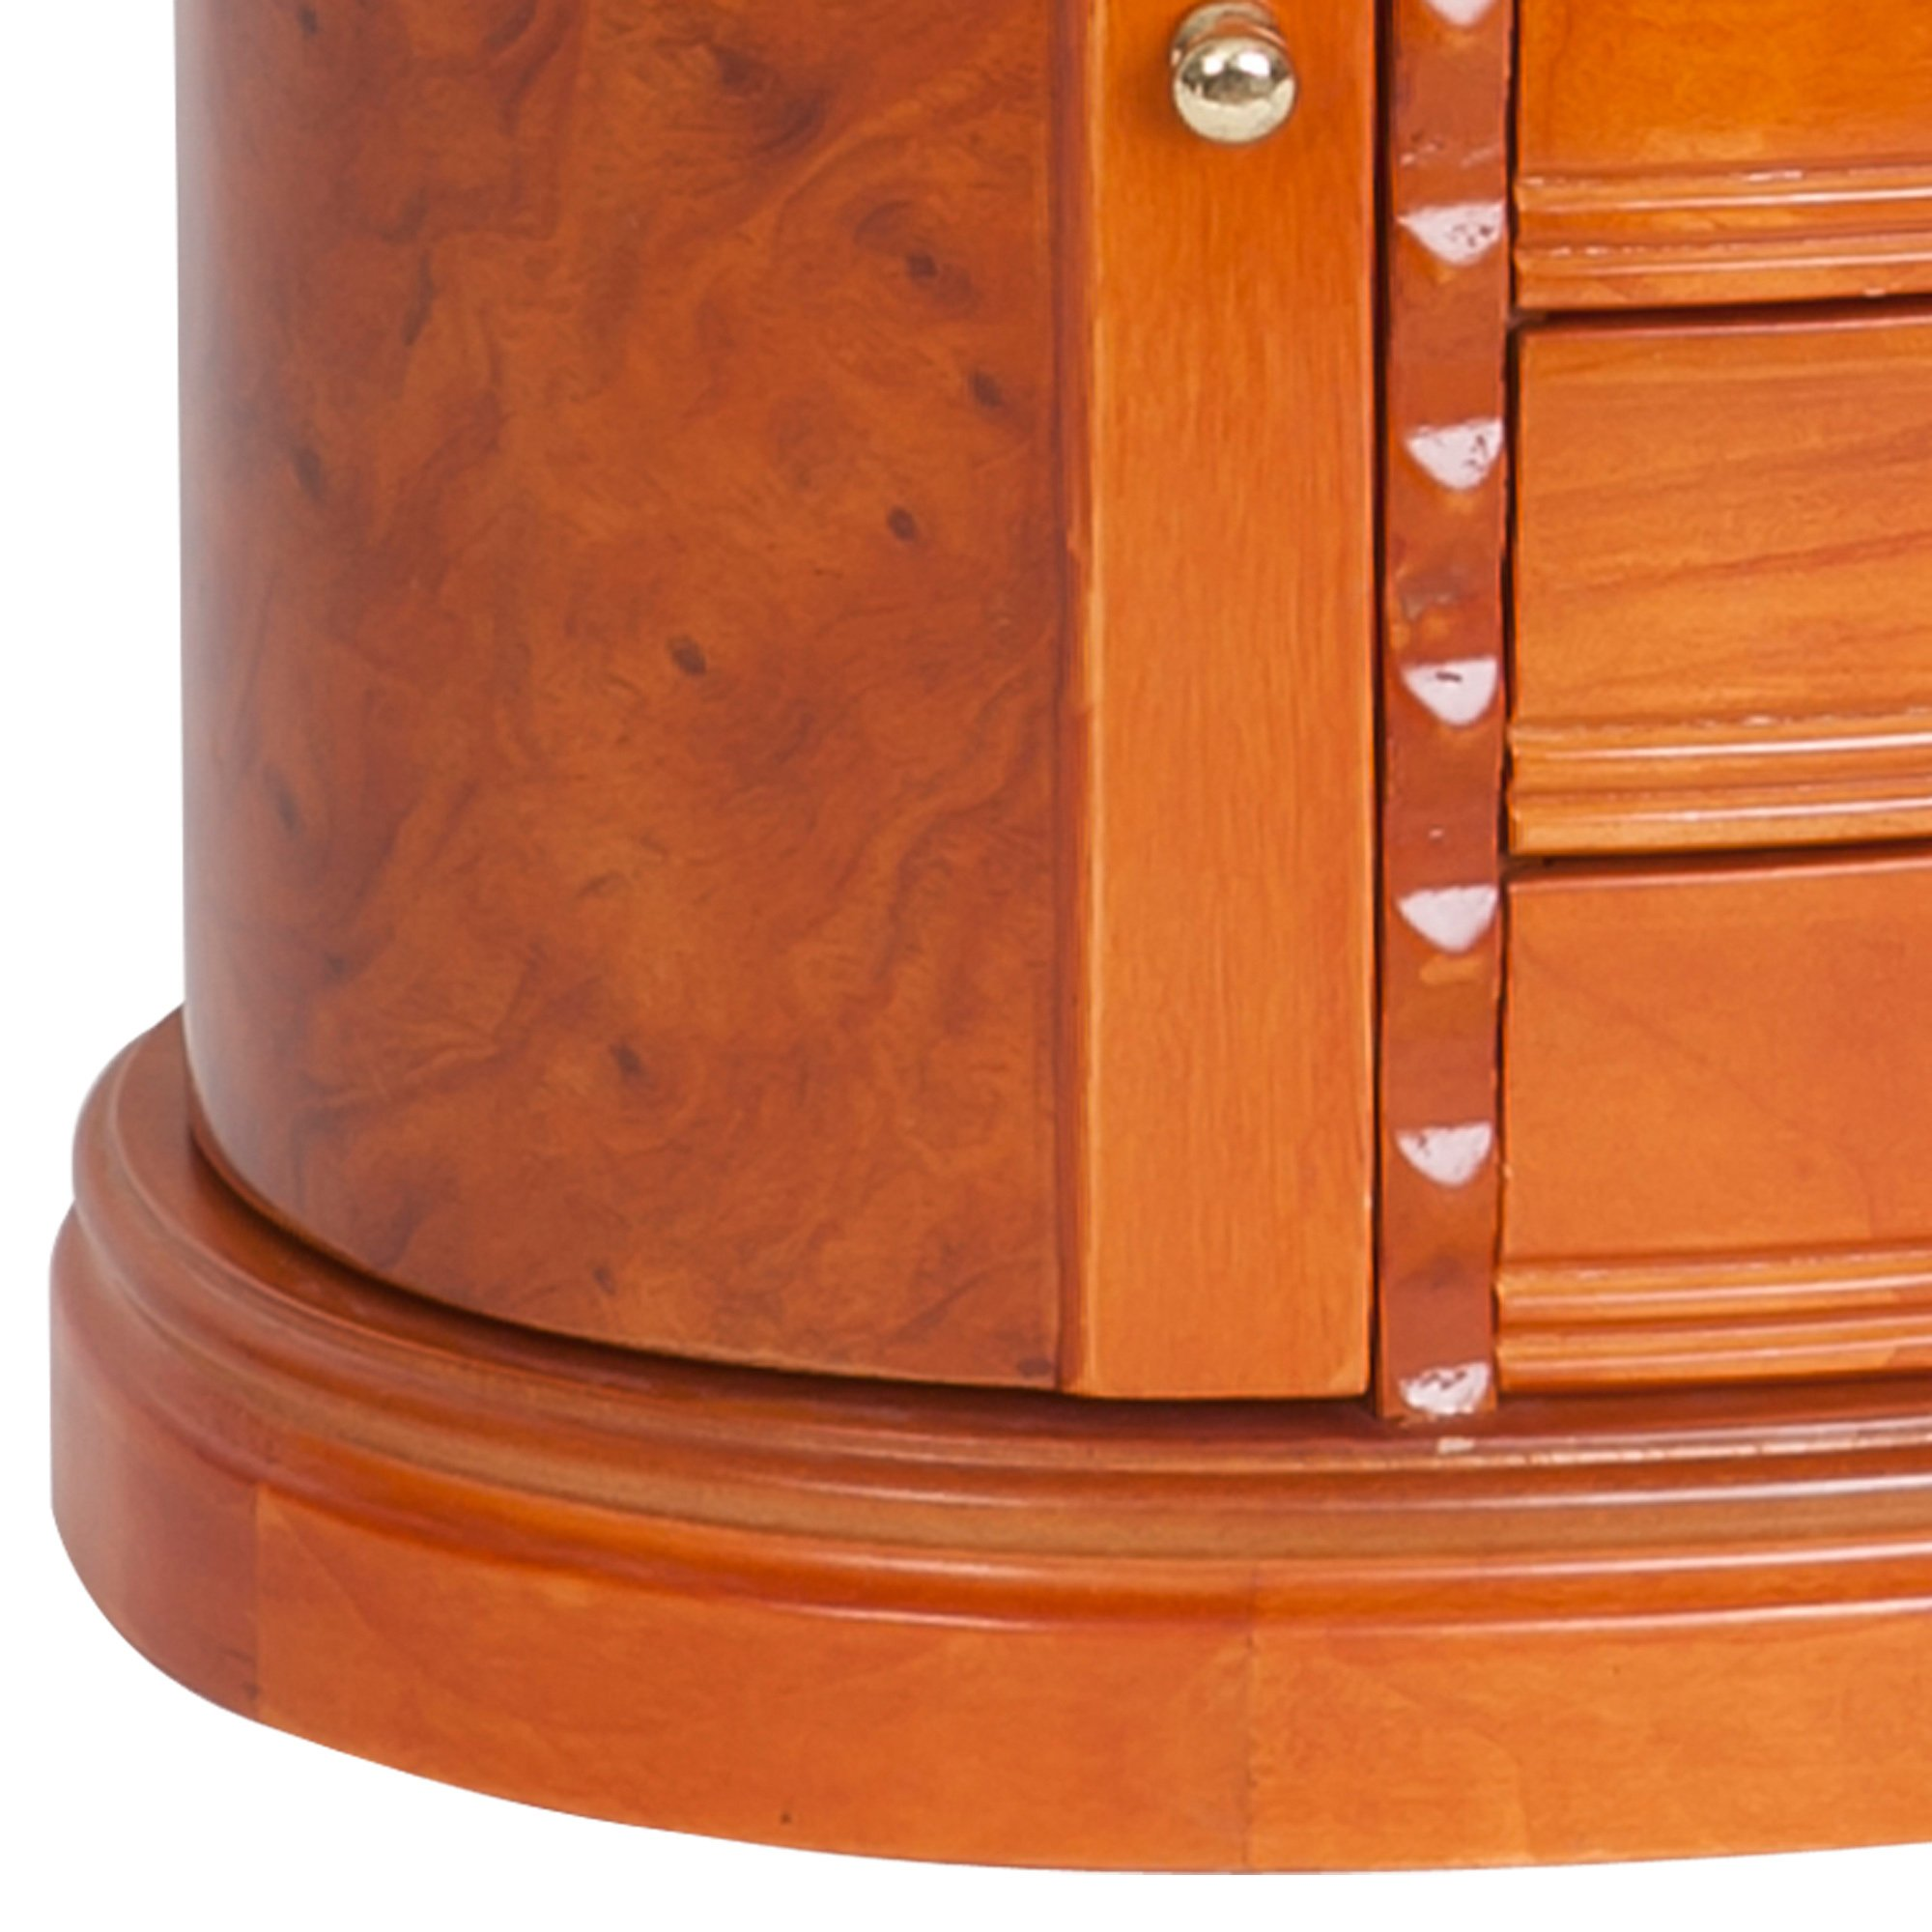 Mele & Co. Trinity Wooden Jewelry Box (Walnut Finish) by Mele & Co. (Image #4)